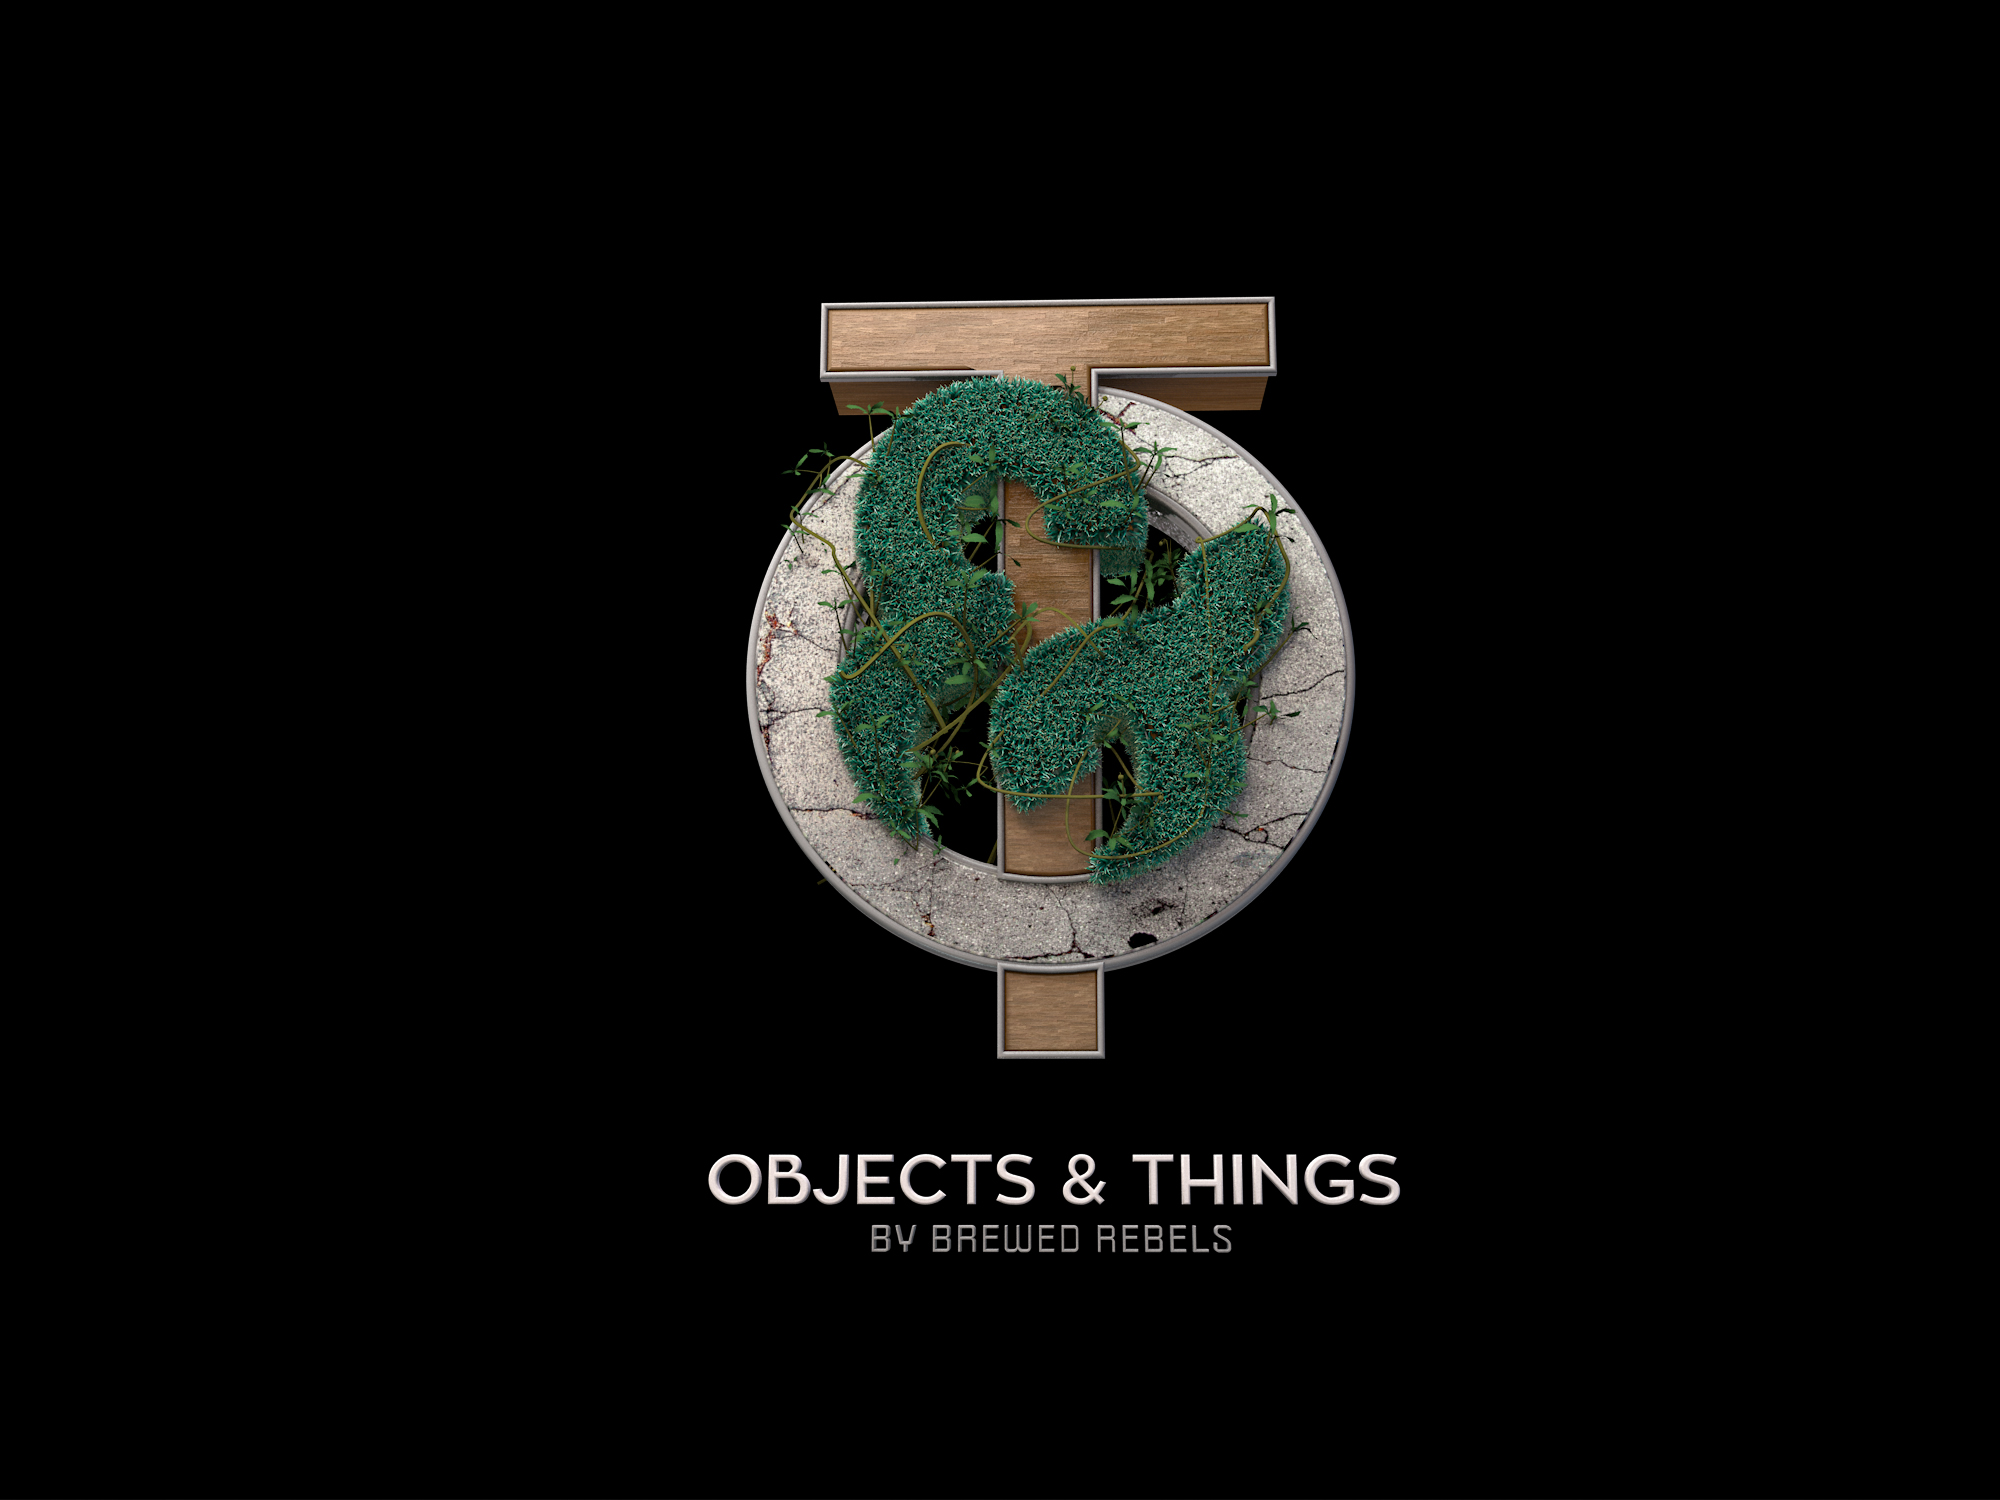 Objects & Things